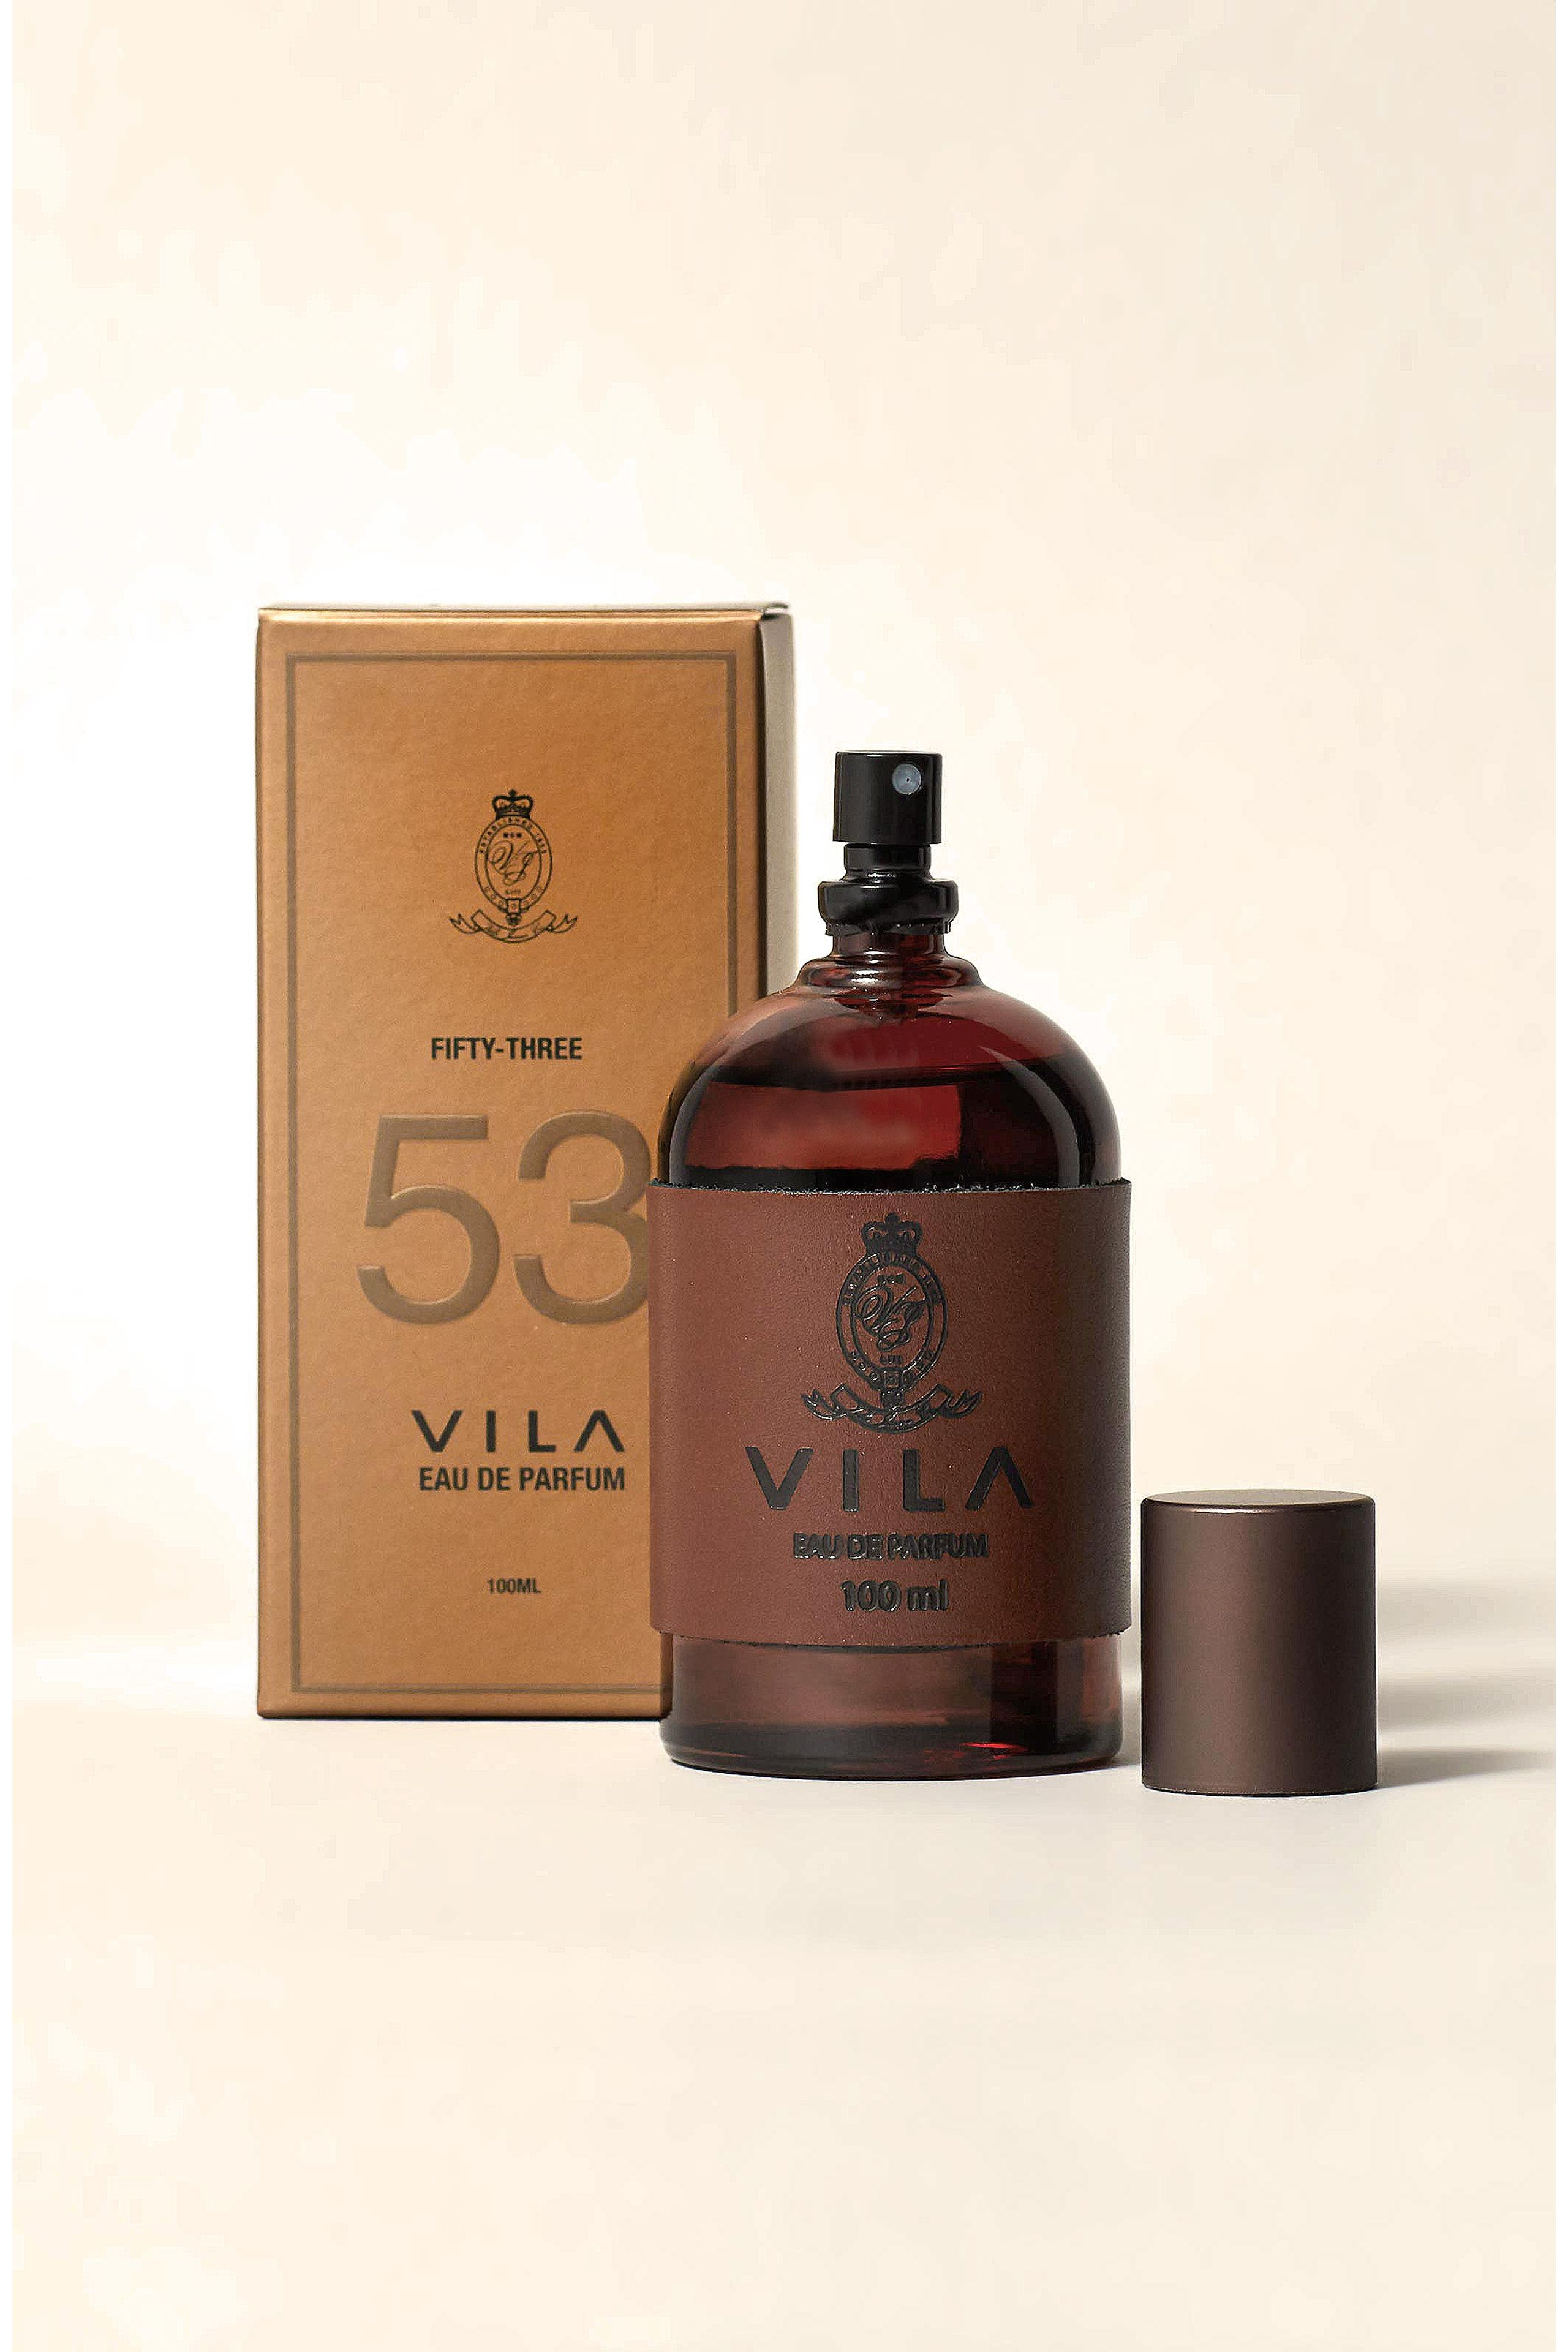 9302BAV00003_785_1-PERFUME-VILA-FIFTY-THREE